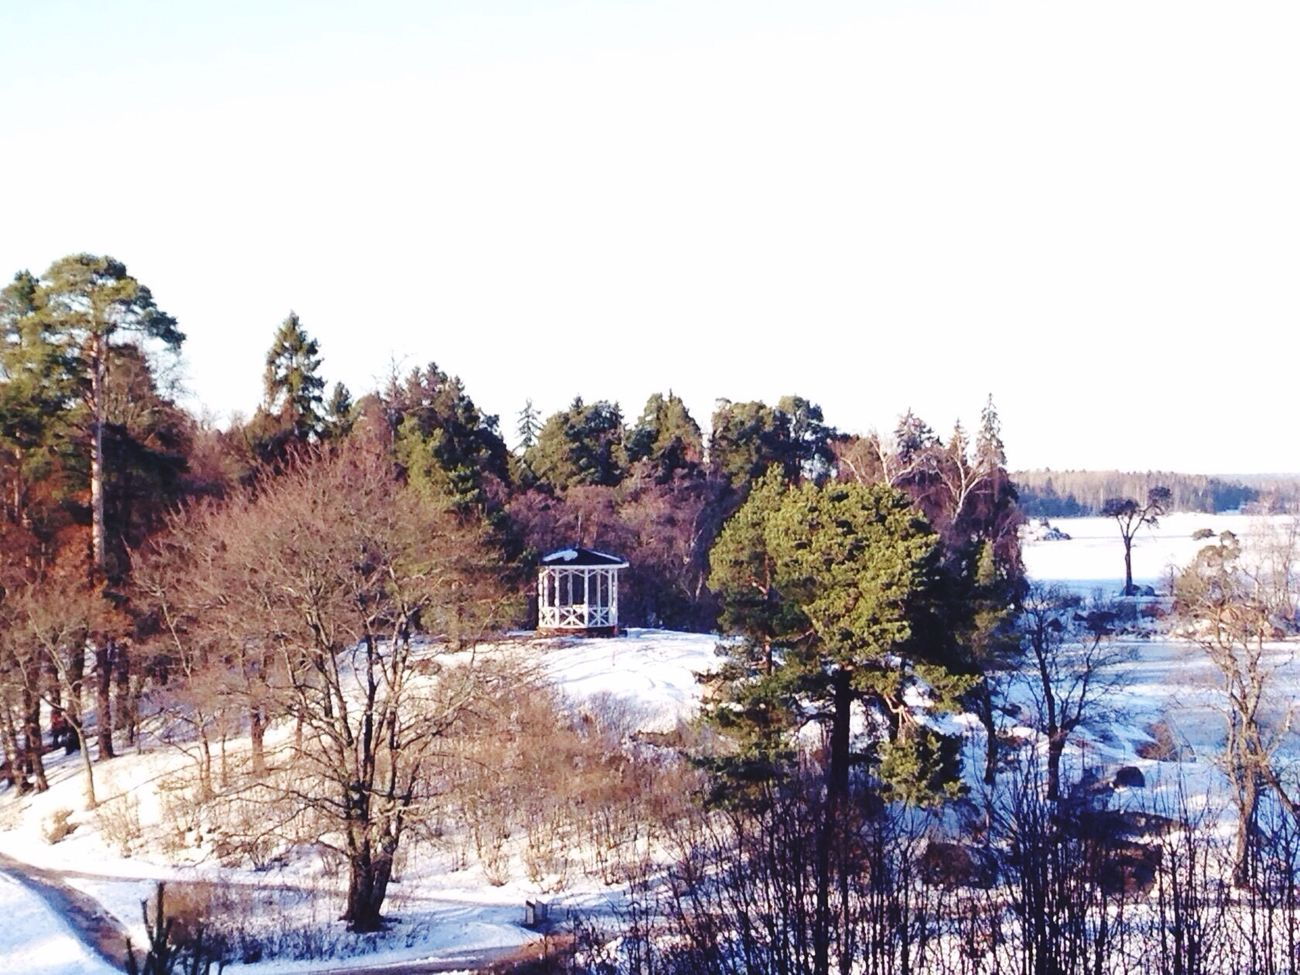 Winter Russia Vyborg Saint Petersburg Gulf Of Finland Nature Nature_collection Park Nature Photography Picturesque Trees Fir Fir Tree Fir Trees Larch Larch Tree Wintertime Winter Trees Mon Repos